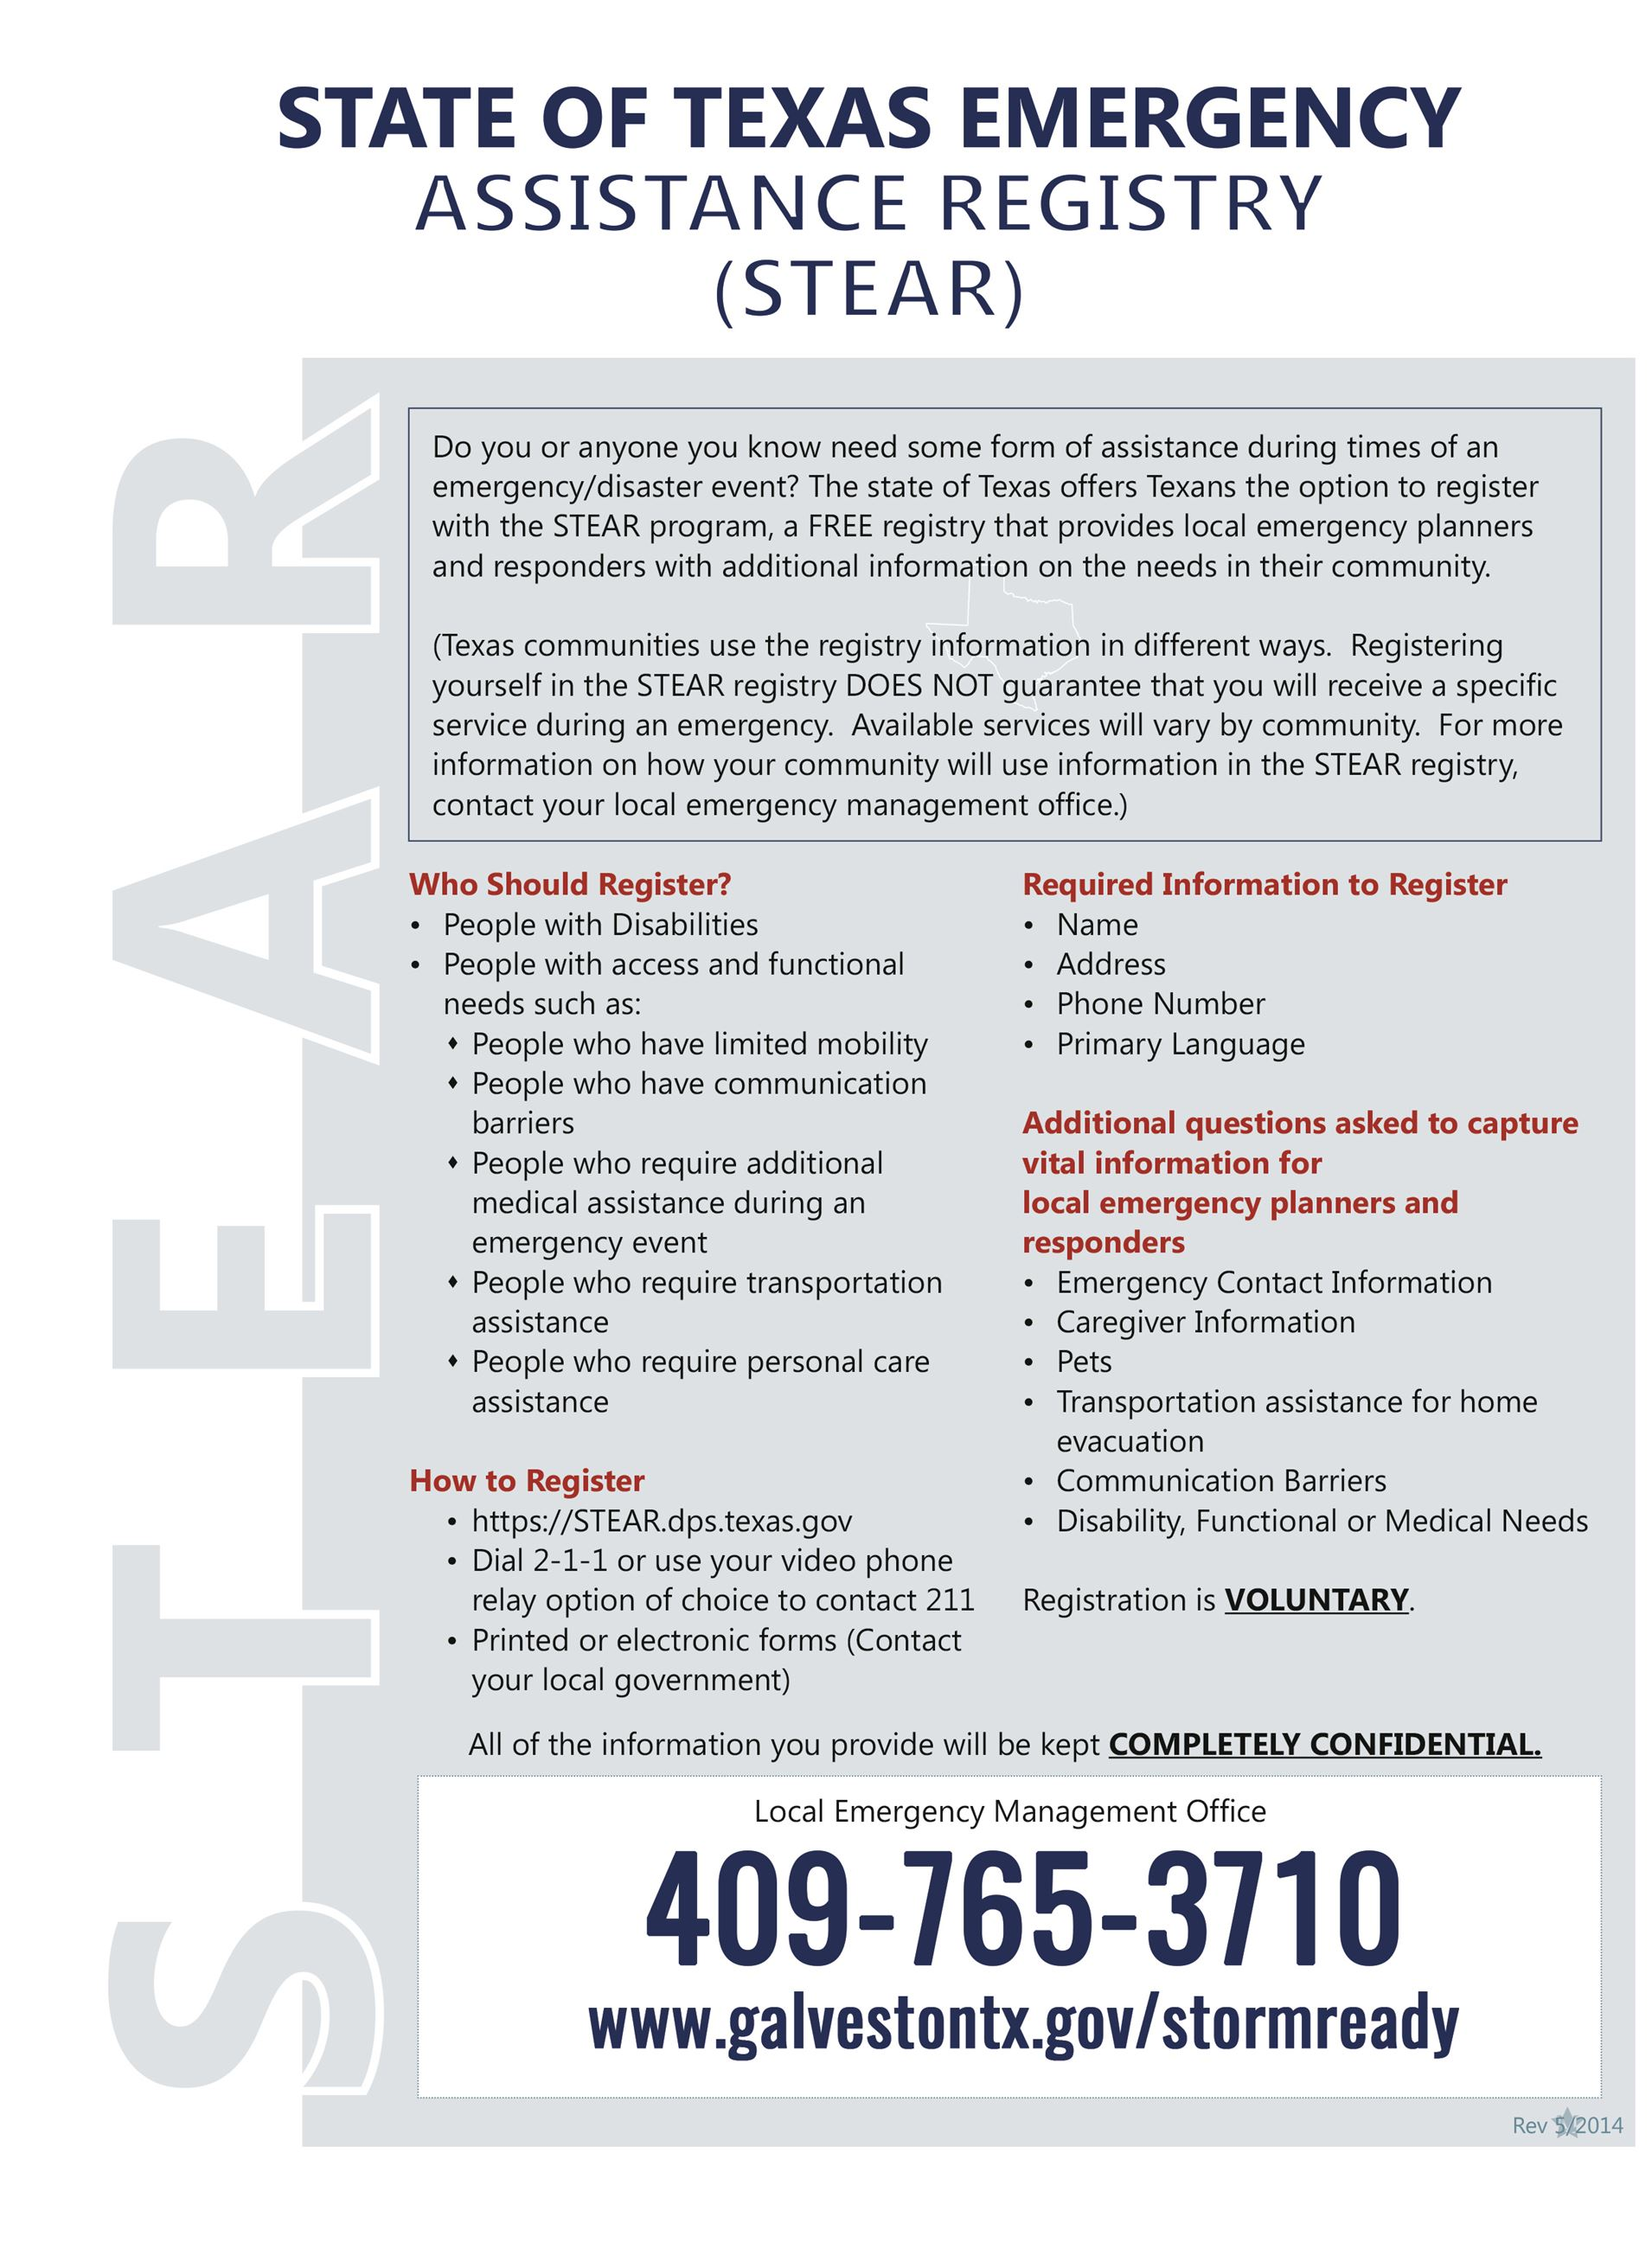 State of Texas Emergency Assistance Registry Flyer